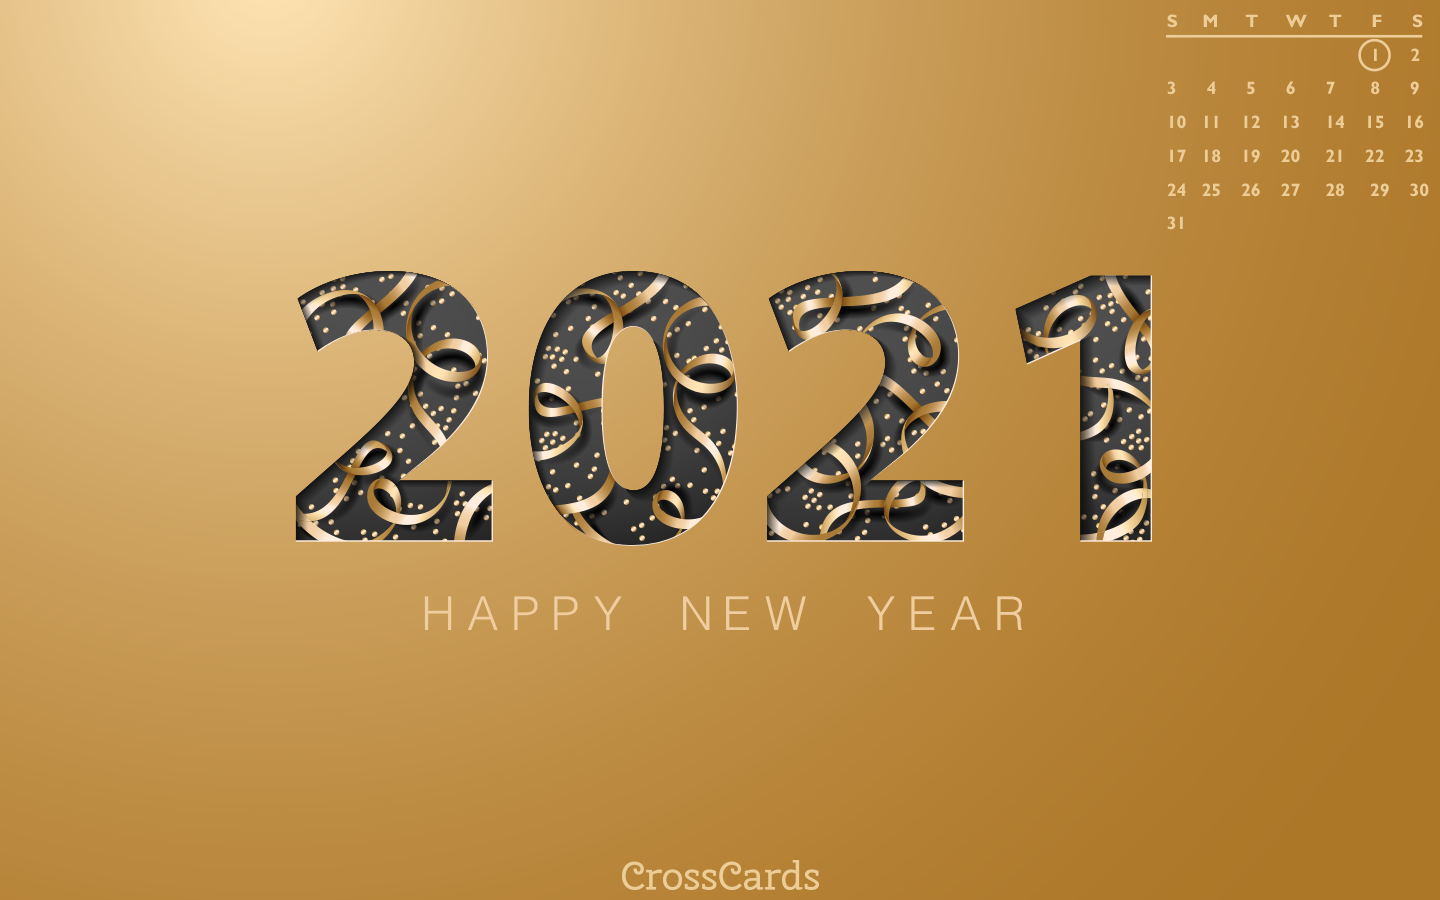 January 2021 - Happy New Year! mobile phone wallpaper